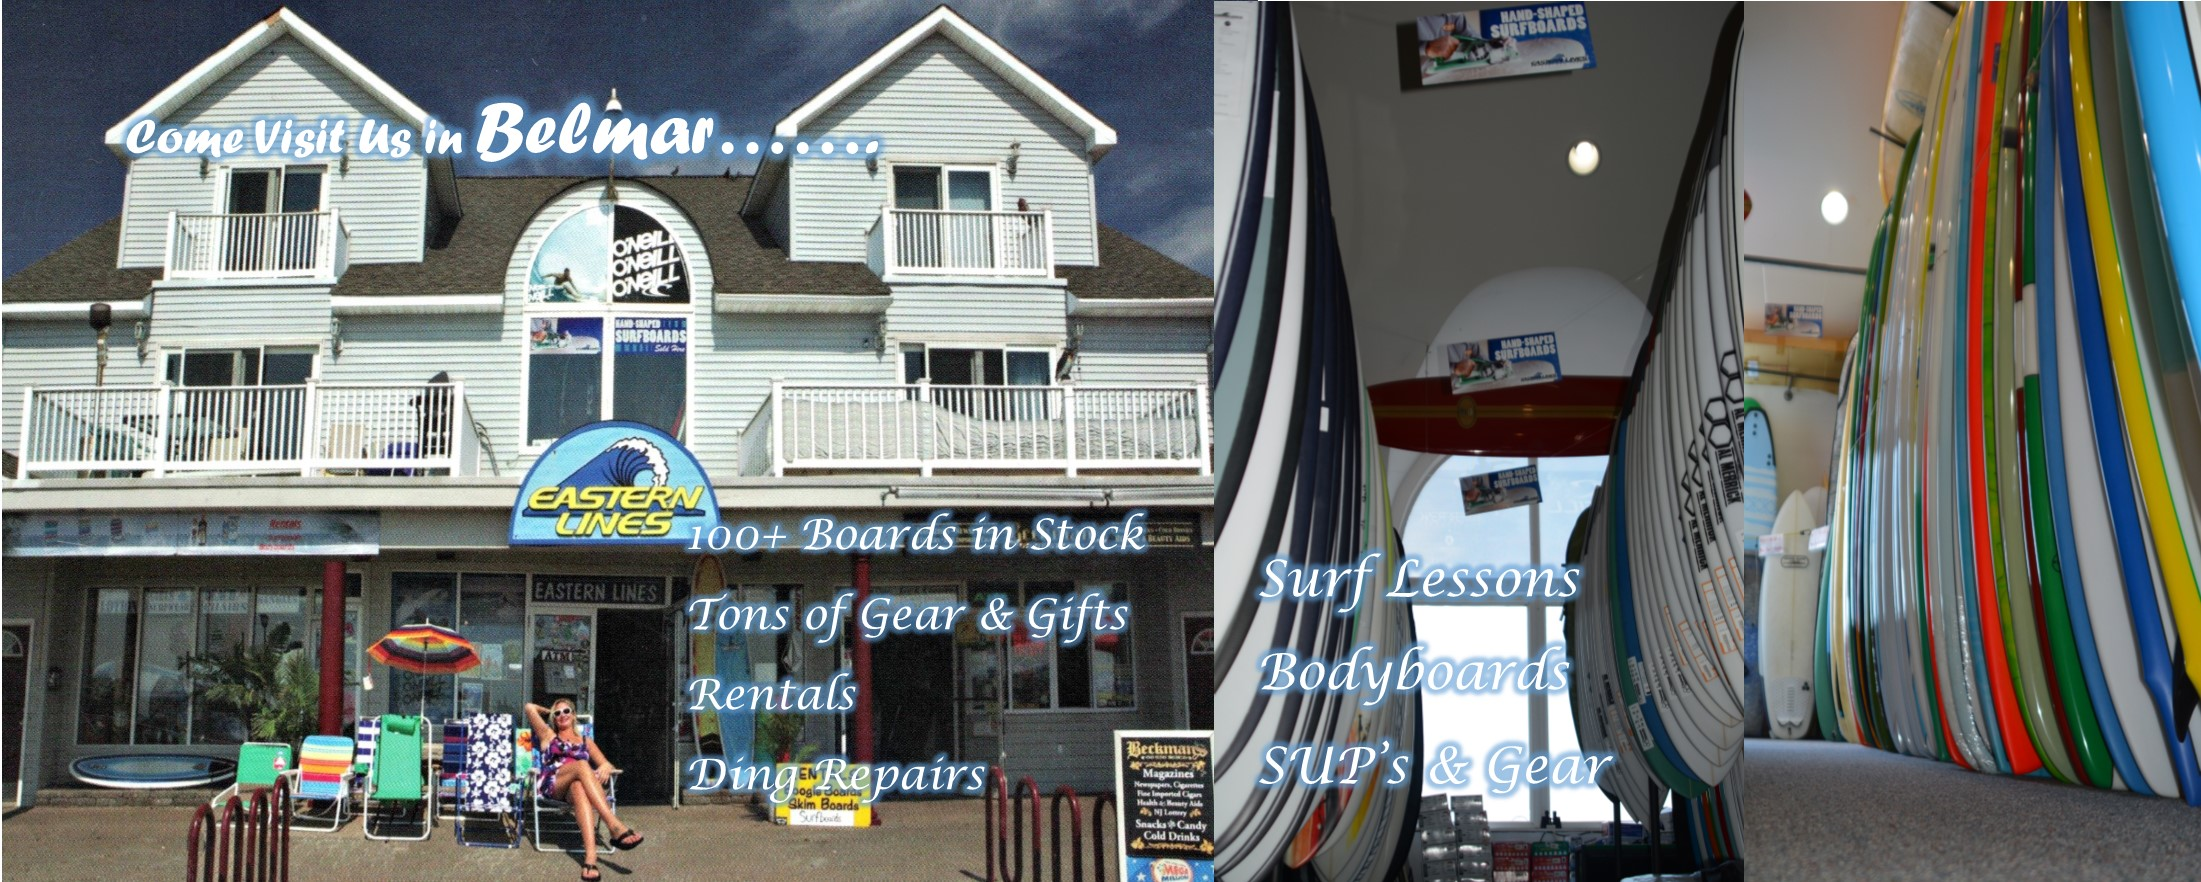 Visit Us in Belmar - Eastern Lines